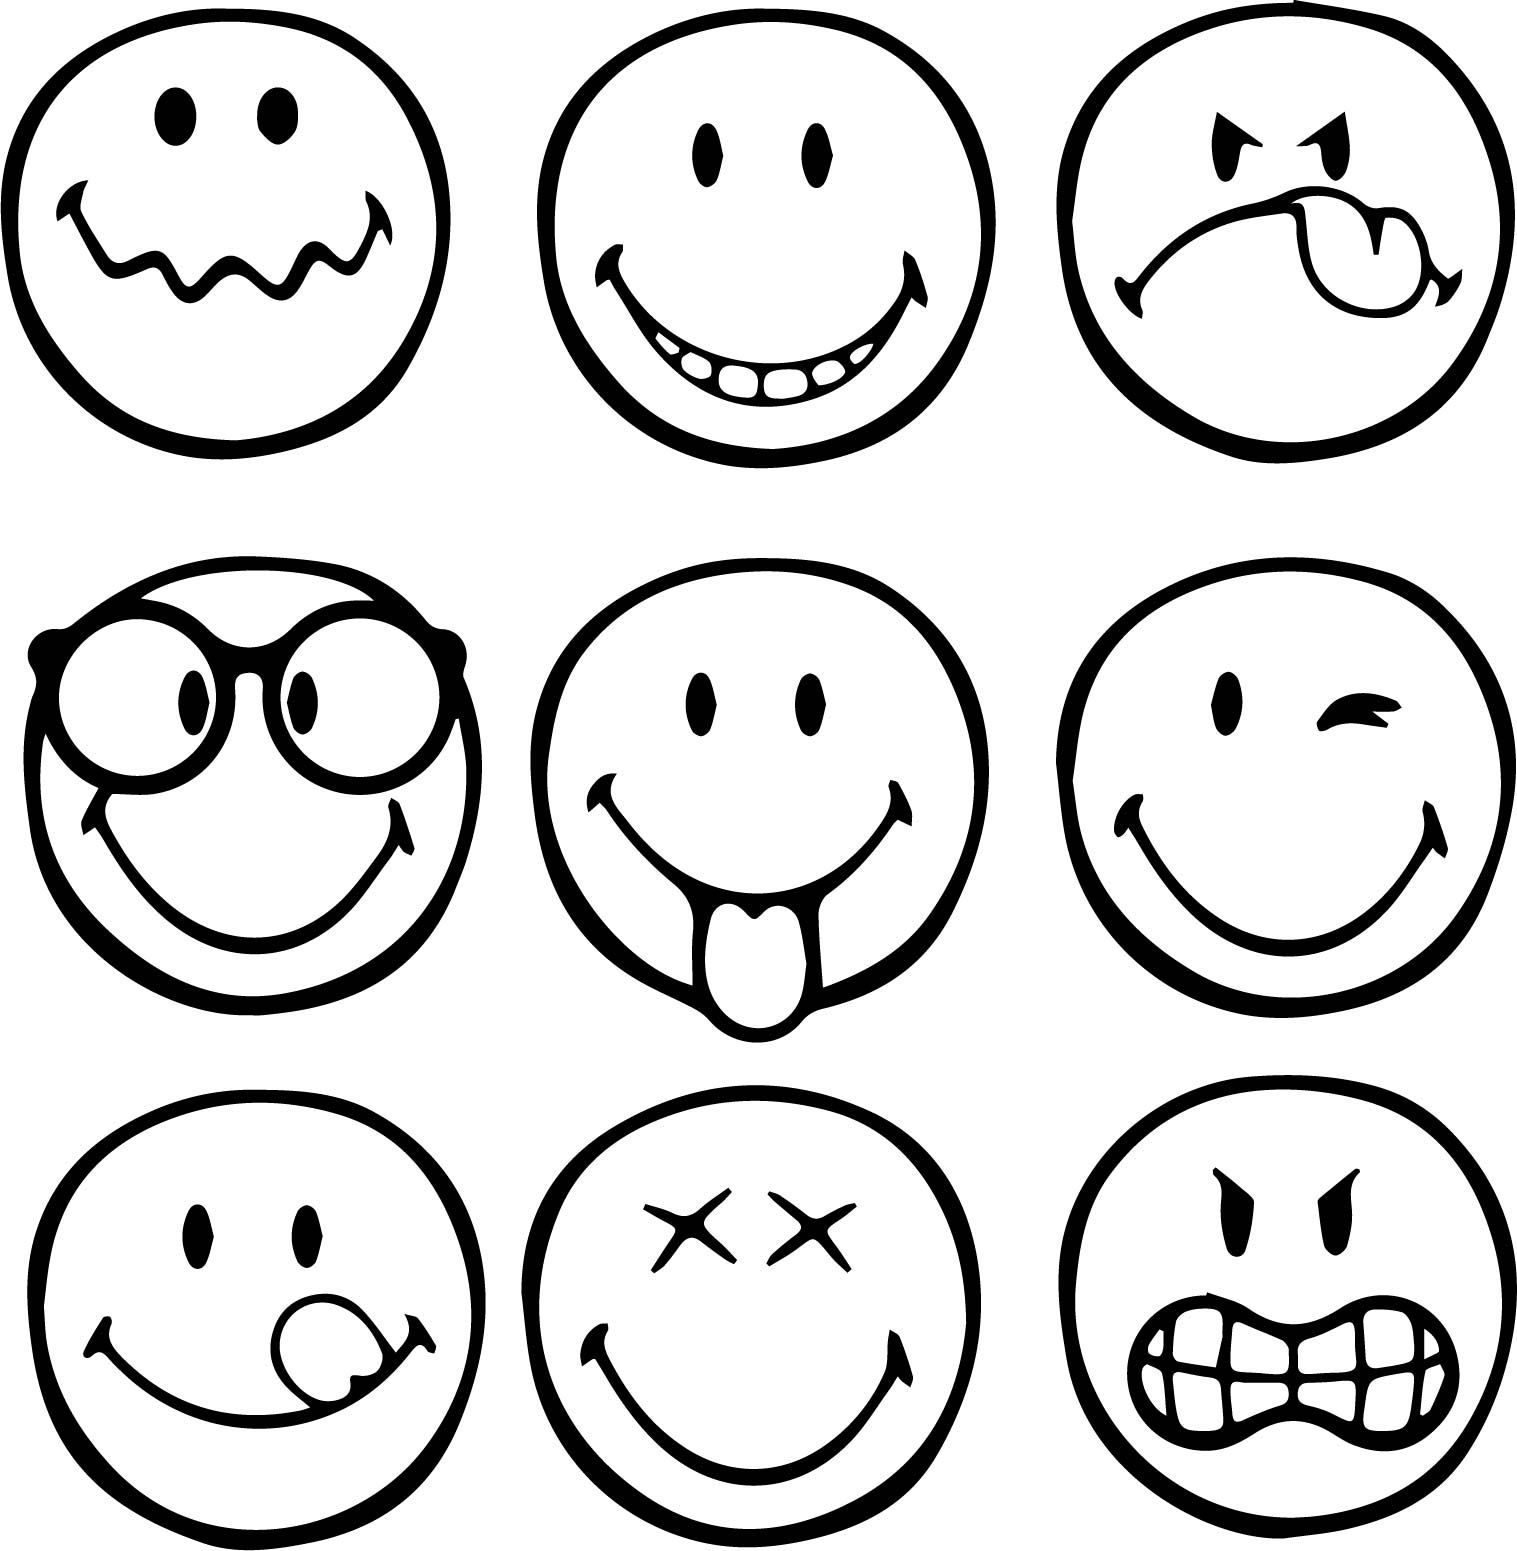 Nice First Graphical Emoticons Smiley Coloring Page Mini Drawings Stick Figure Drawing Art Drawings For Kids